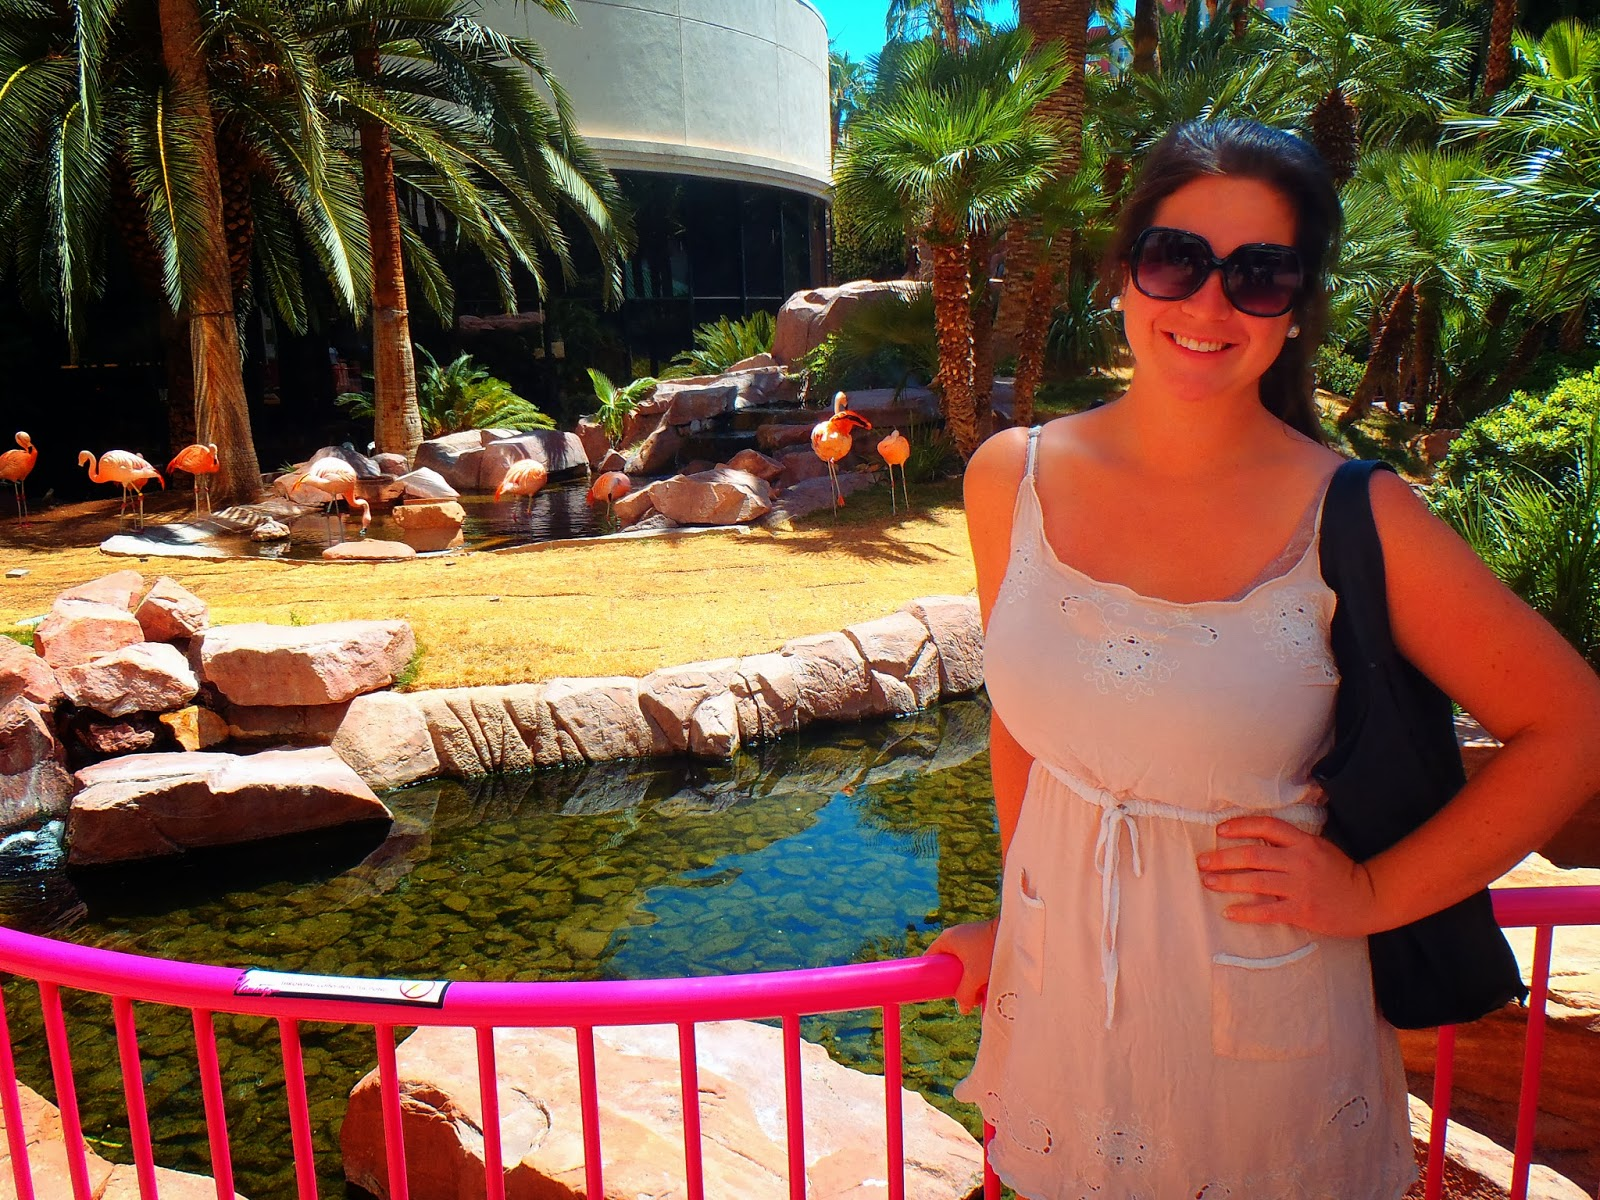 Simone standing near Flamingoes Las Vegas